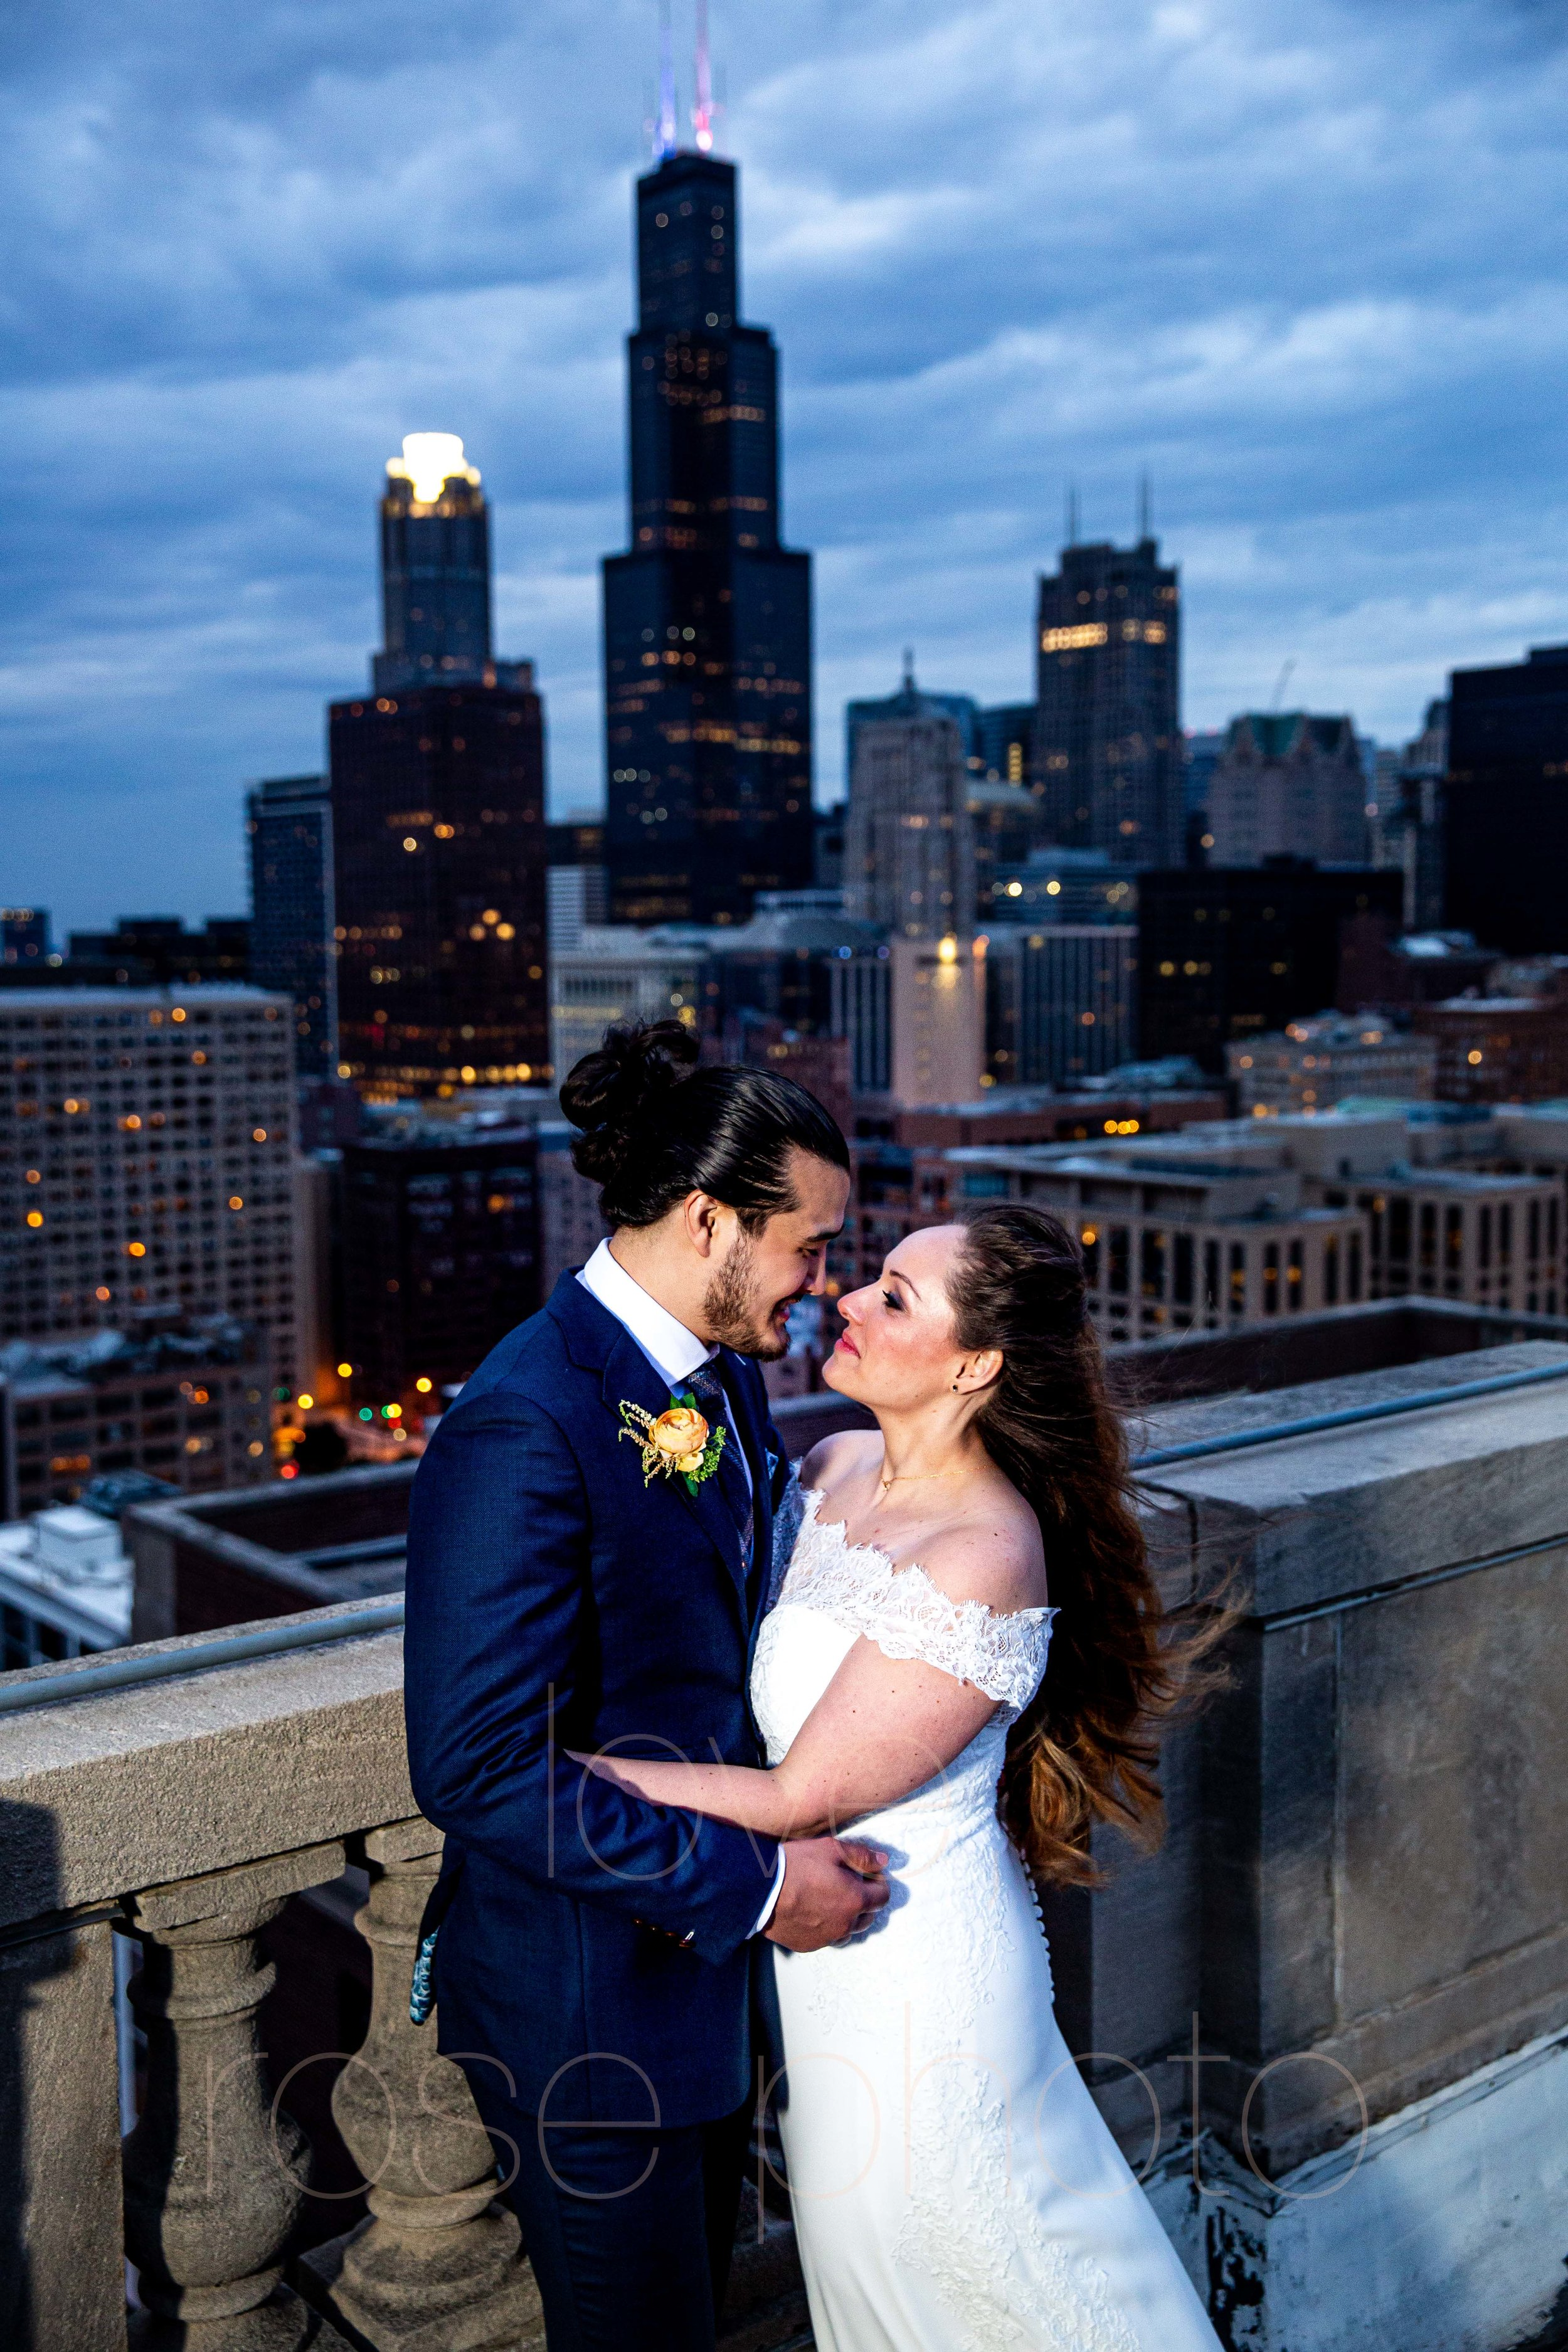 L + S Rose Photo Chicago Wedding Photography lifestyle wed portait collective best of the knot chicago wedding photography-55.jpg